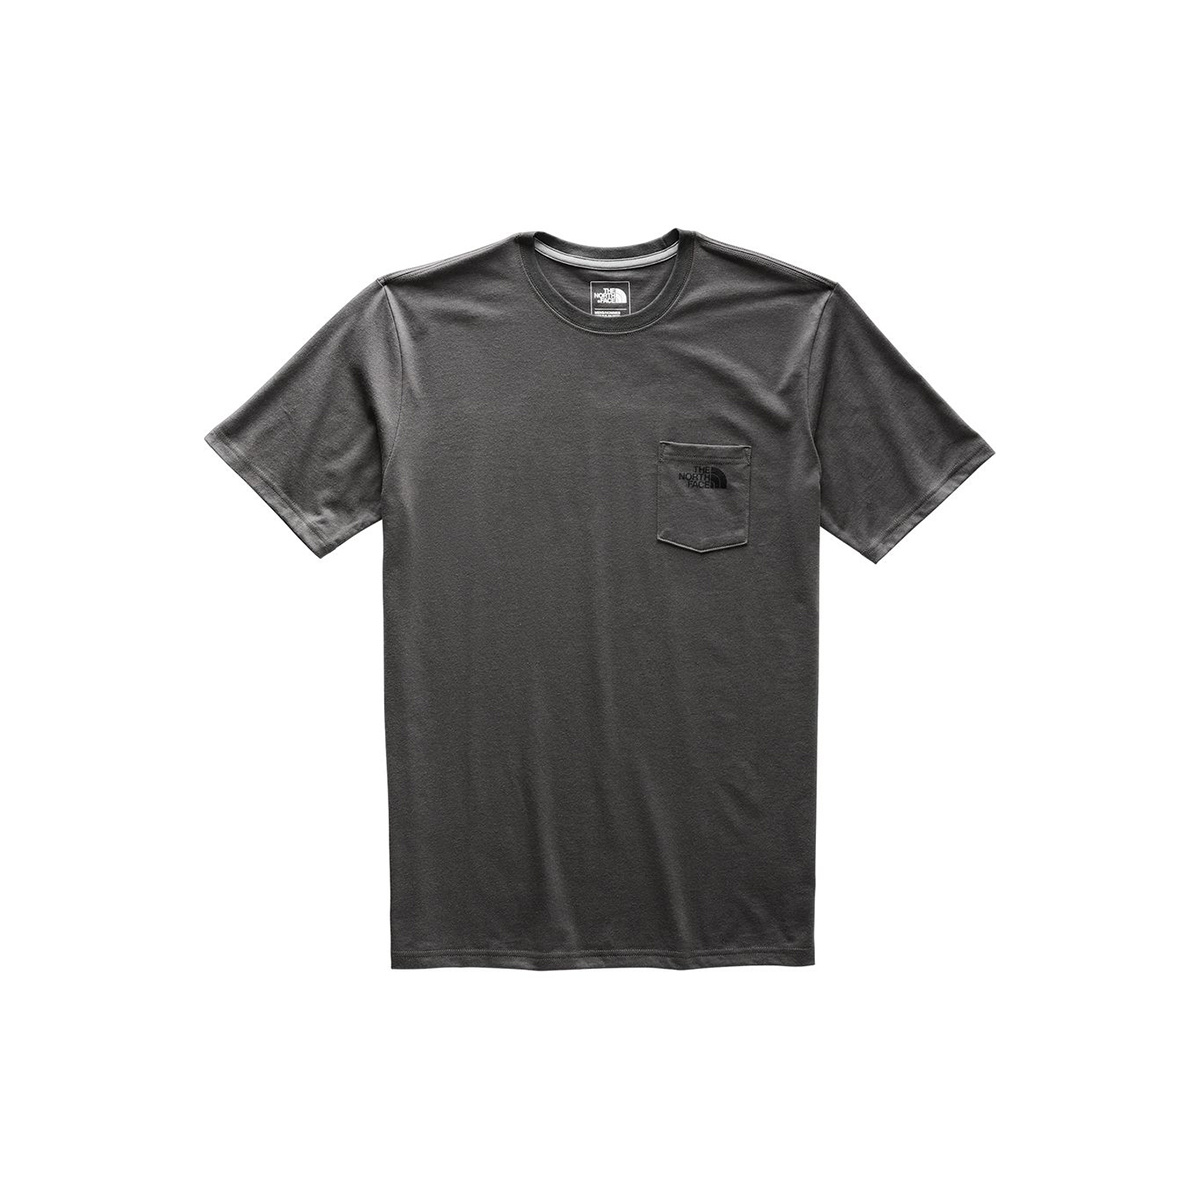 8b814c4b3 The North Face M SS Bottle Source Pocket Tee